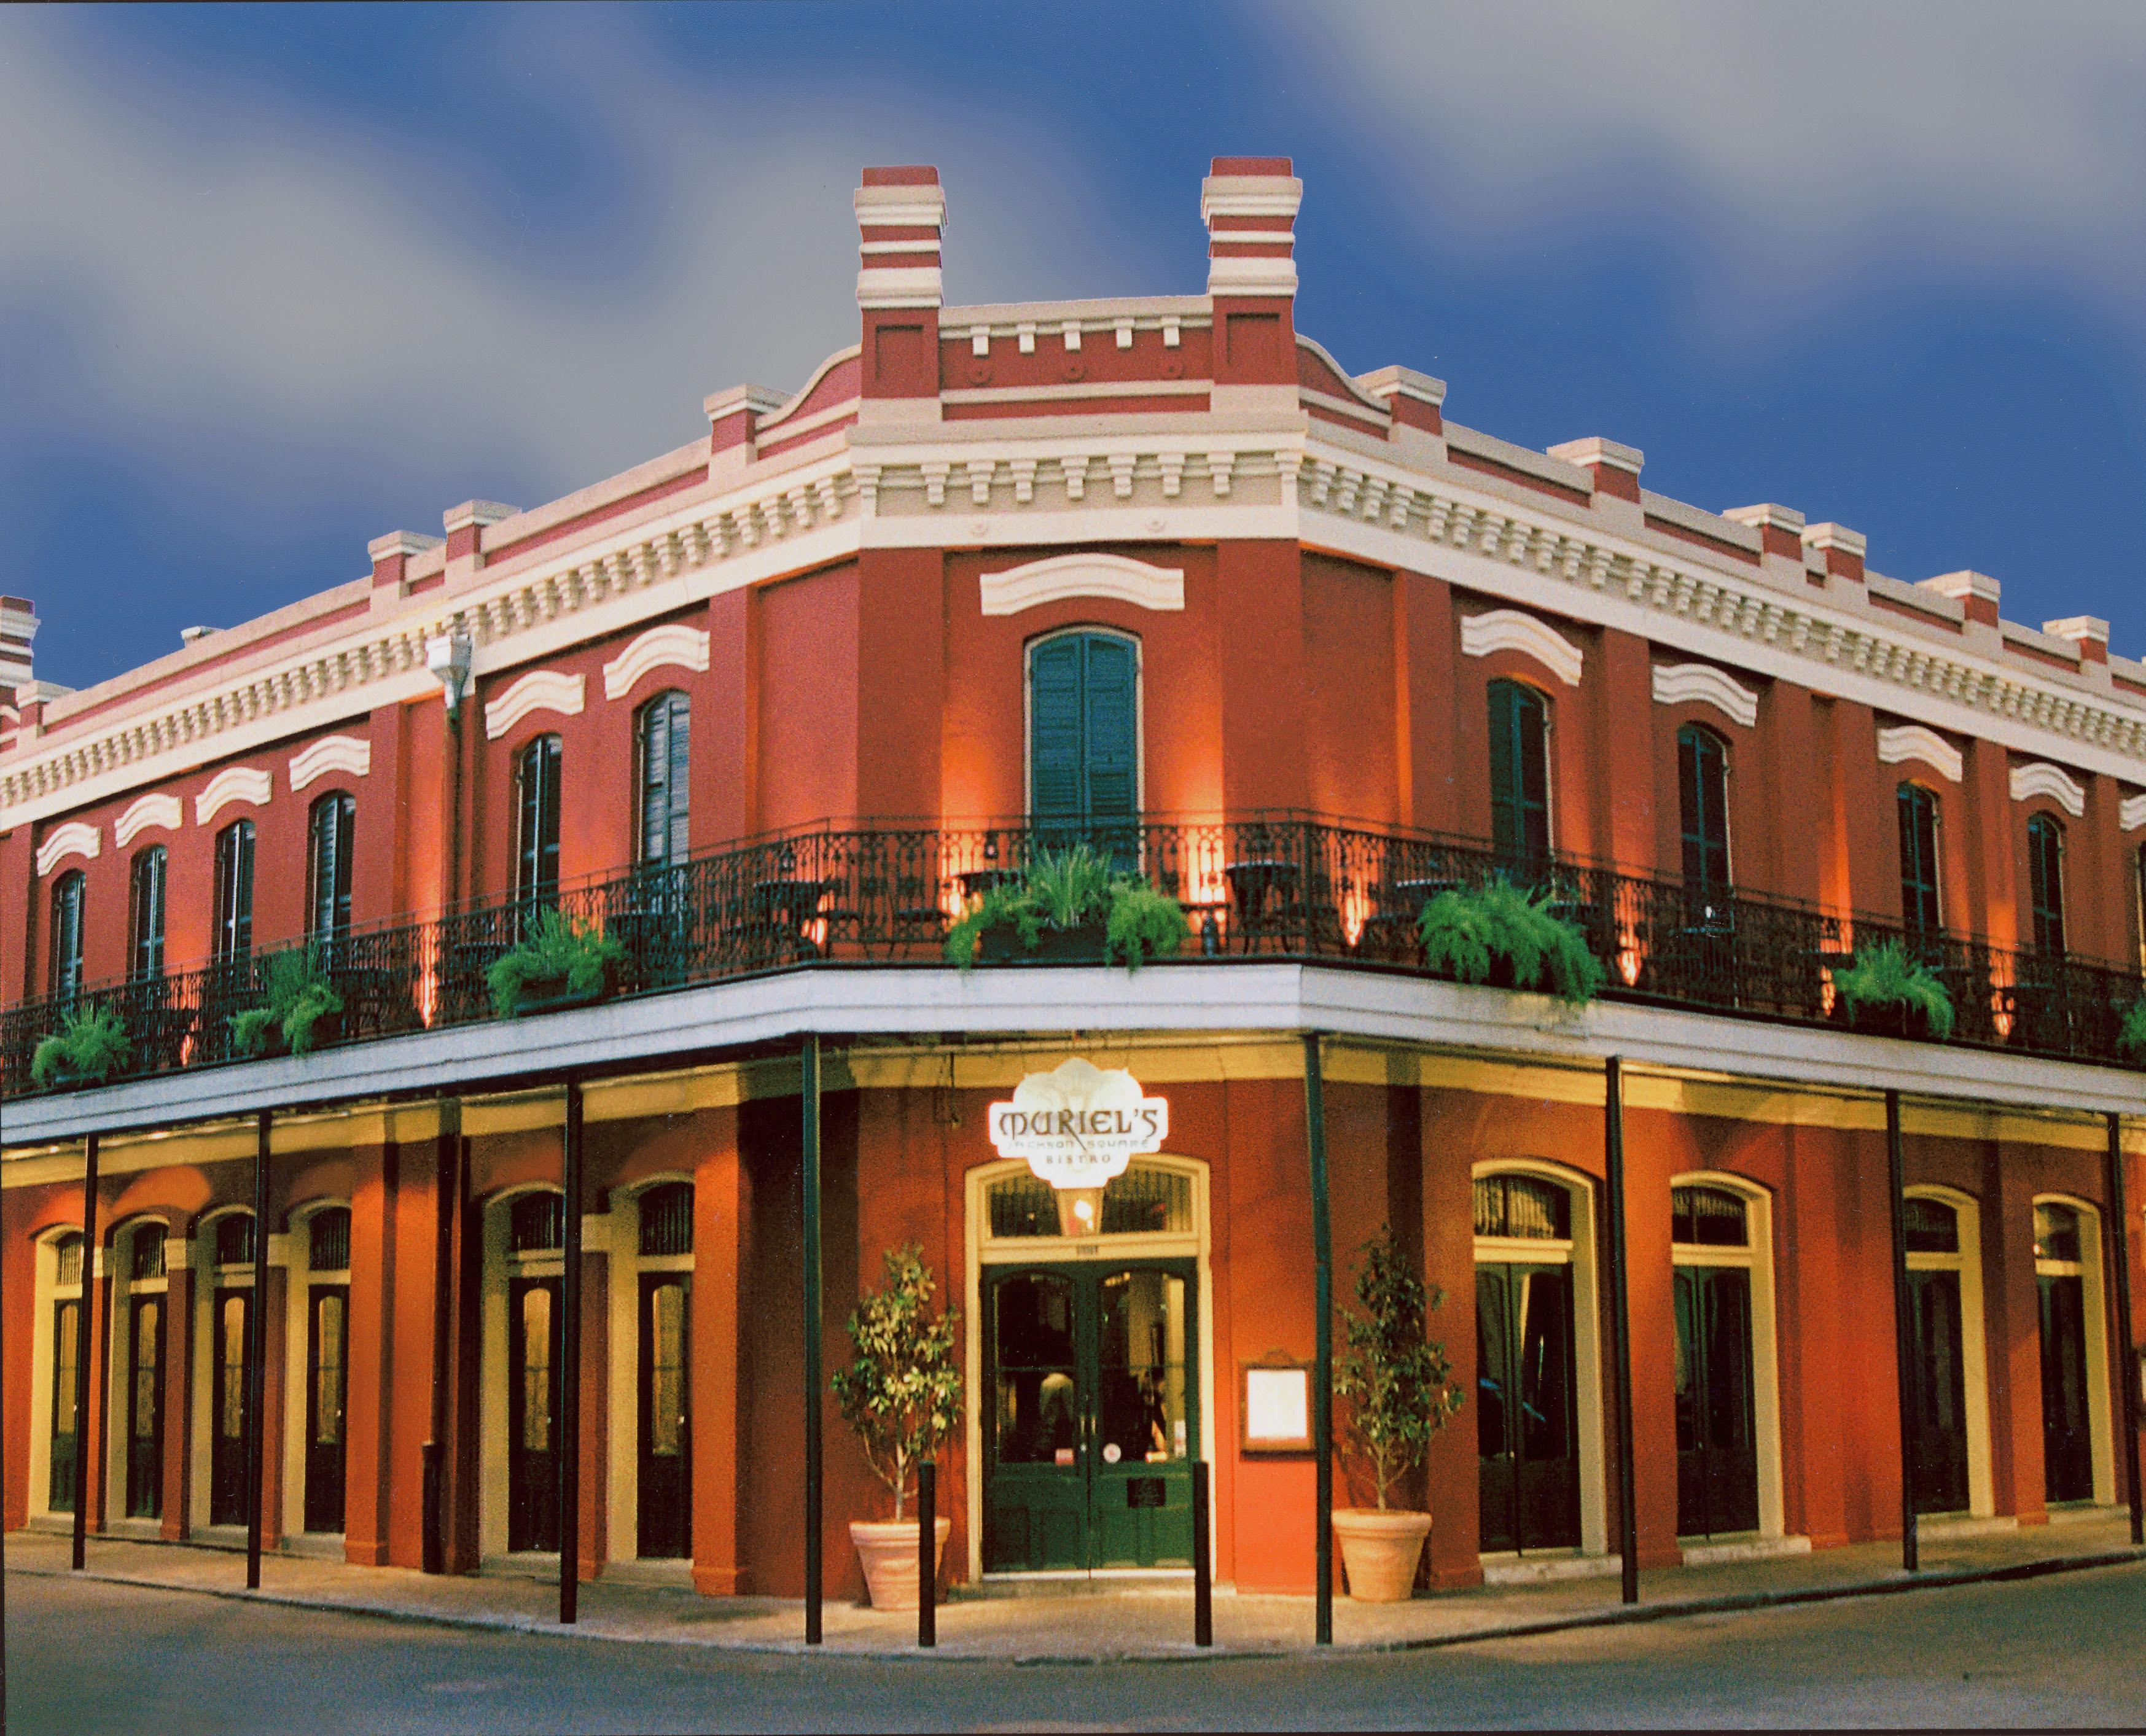 Muriel's historic building is located on Jackson Square.